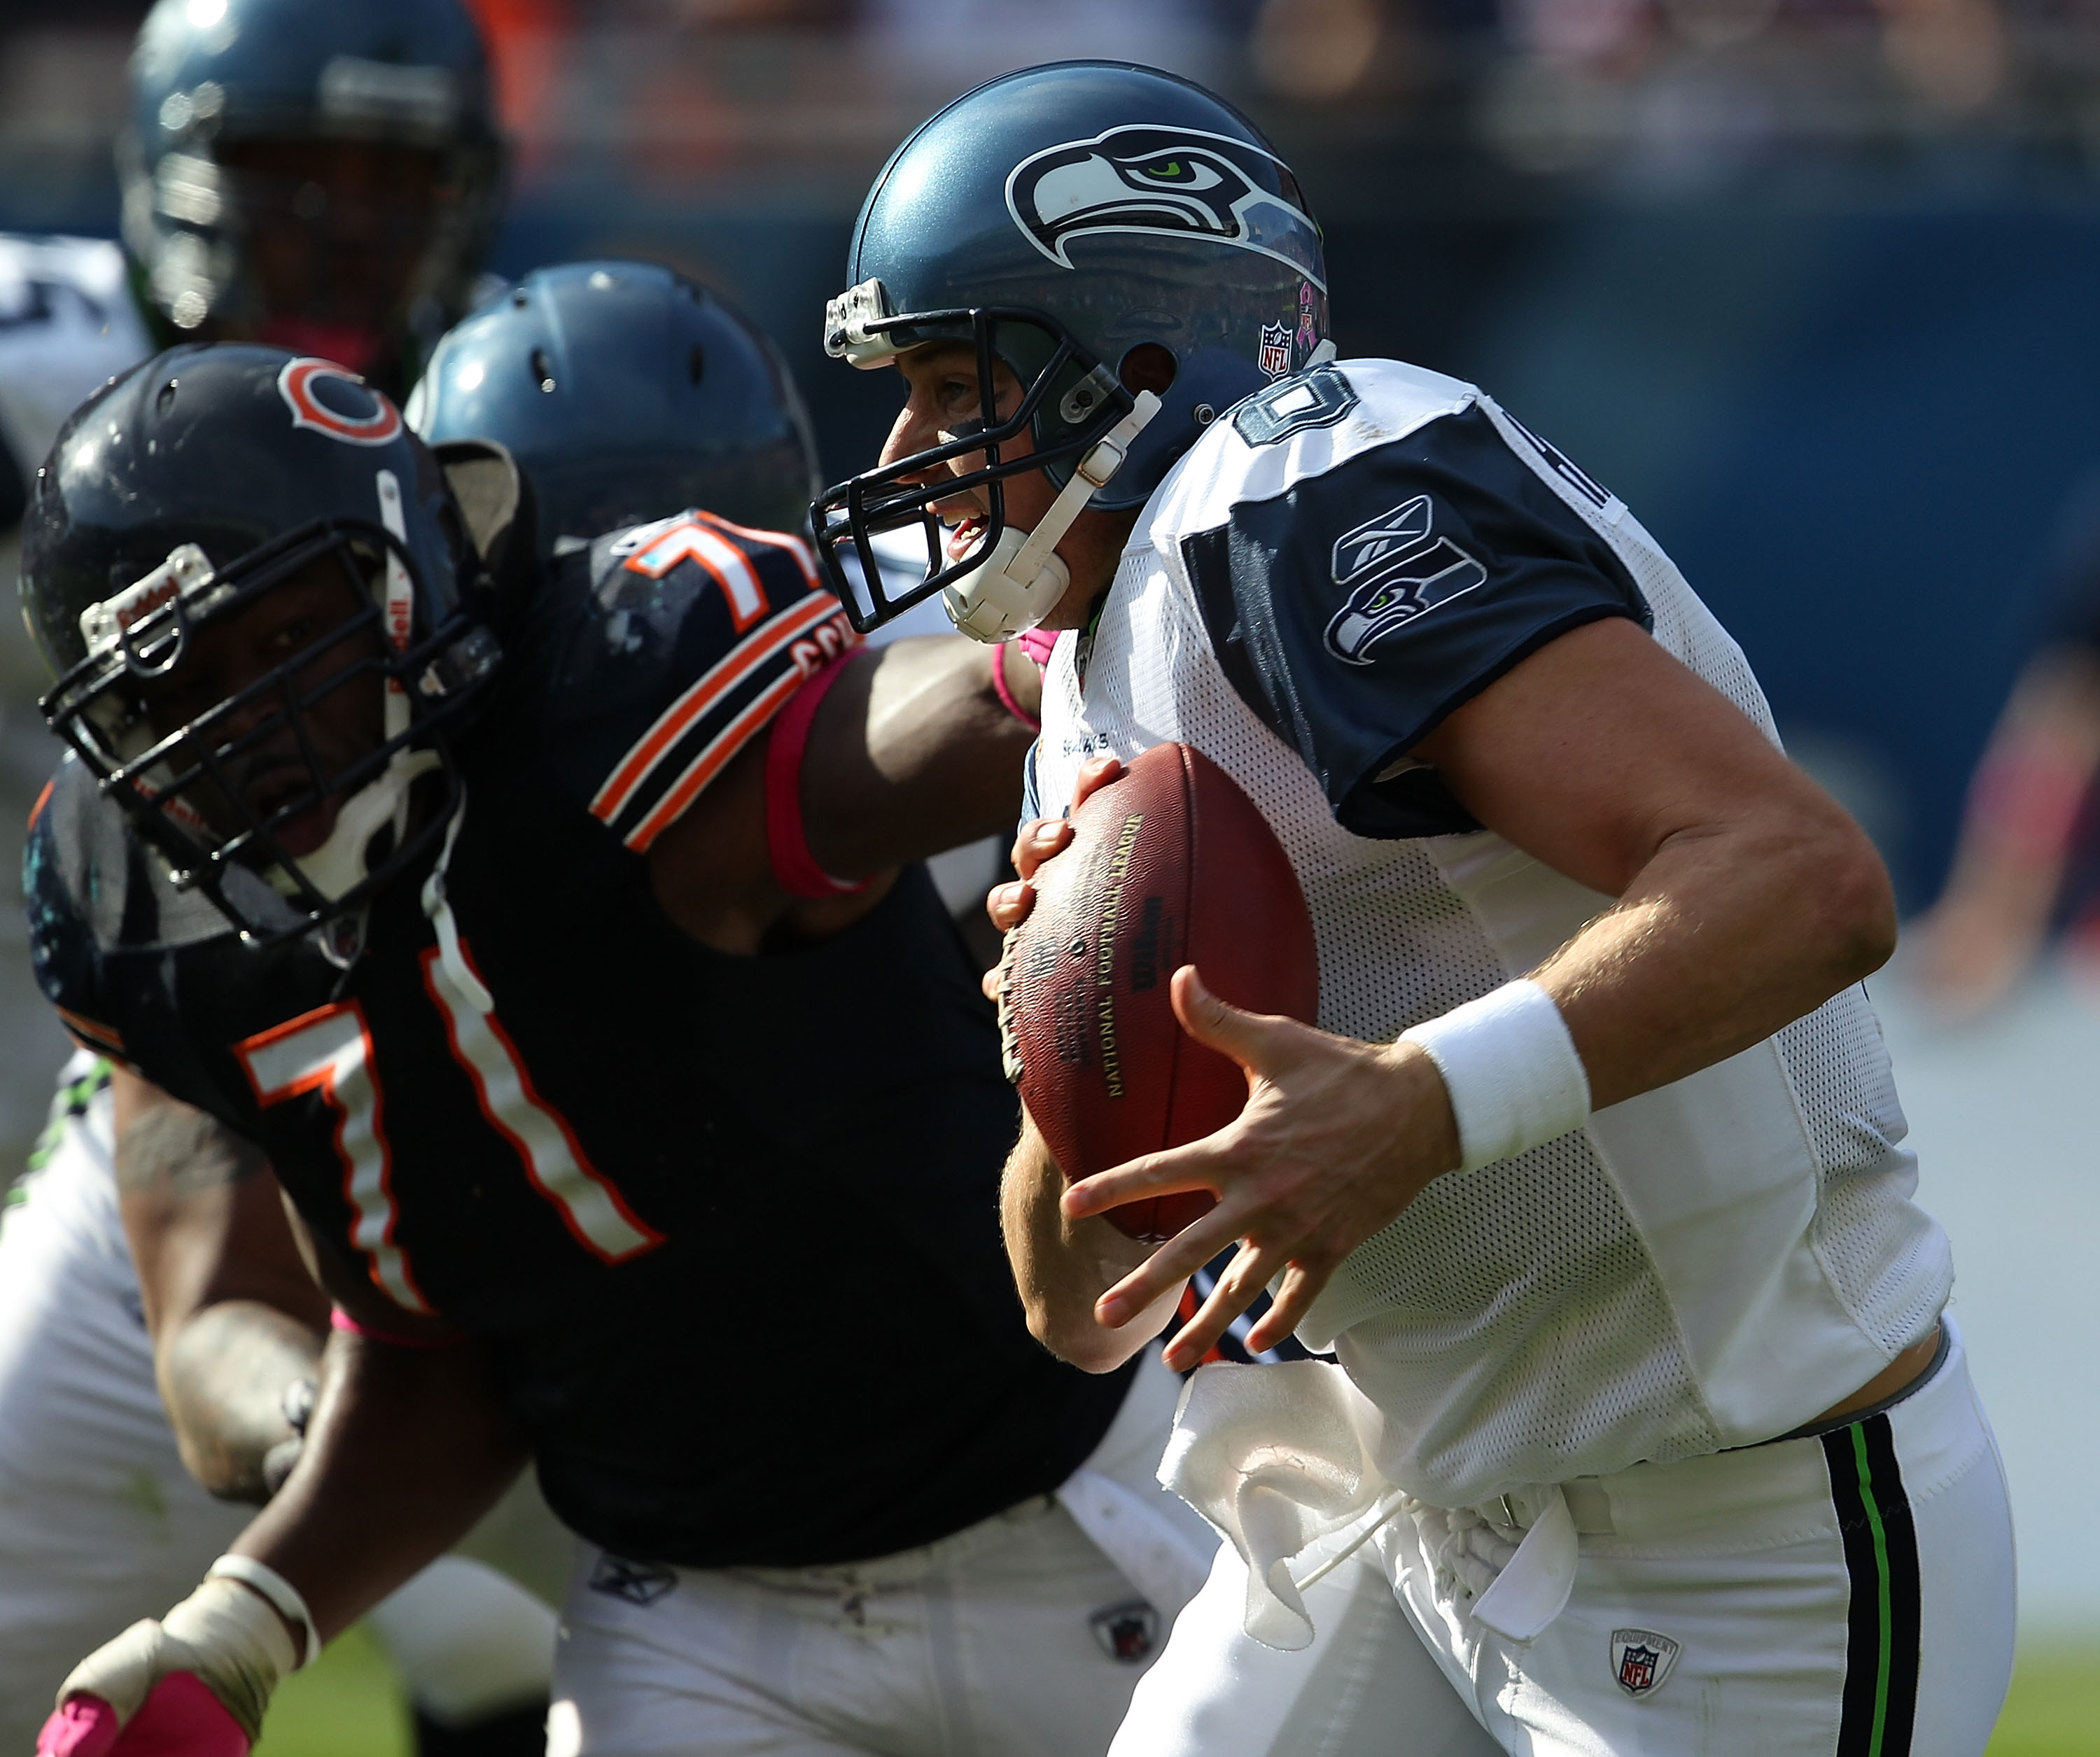 CHICAGO - OCTOBER 17: Matt Hasselbeck #8 of the Seattle Seahawks runs past Israel Idonije #71 of the Chicago Bears at Soldier Field on October 17, 2010 in Chicago, Illinois. The Seahawks defeated the Bears 23-20. (Photo by Jonathan Daniel/Getty Images)